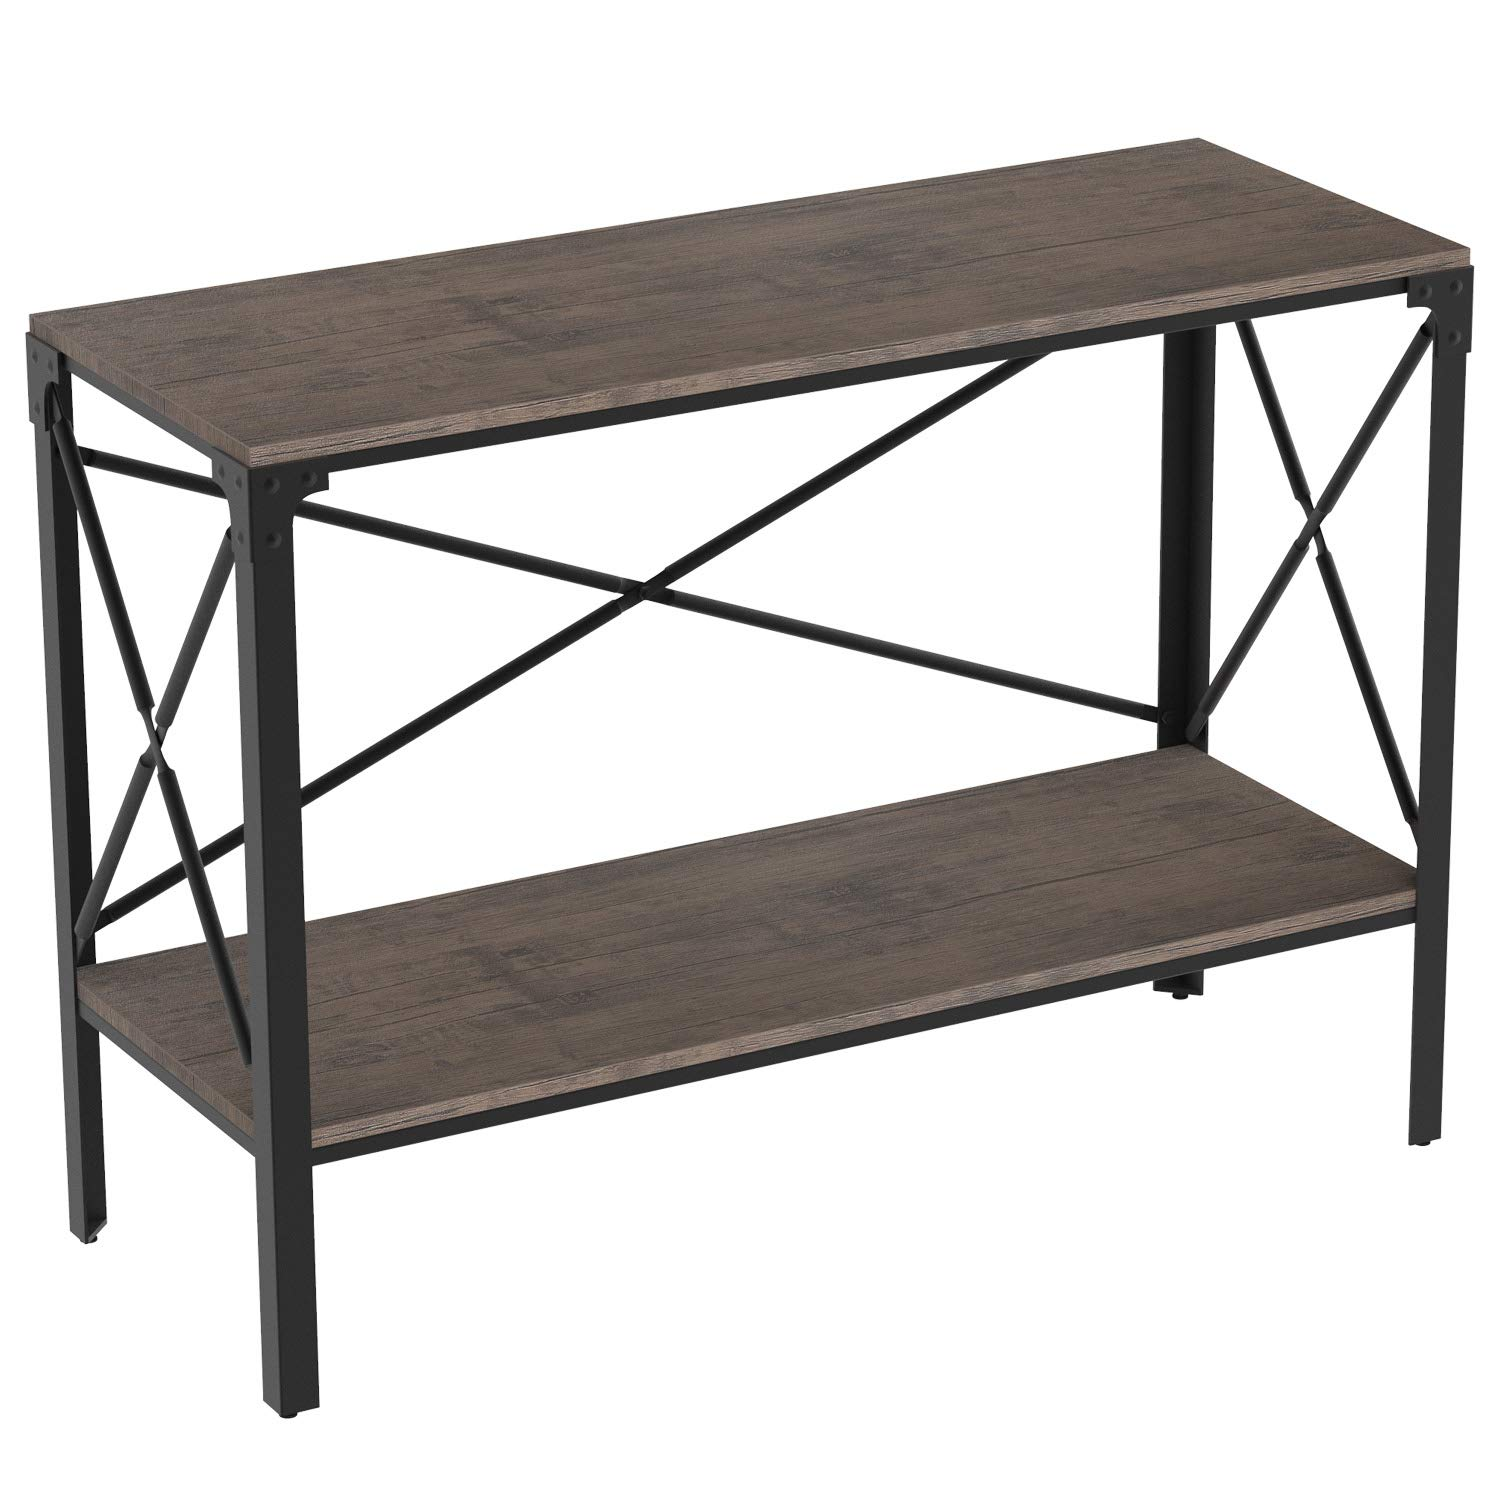 IRONCK Rustic Console Table 2 Tier, Entryway Table with Storage, Entry Table for Entryway Living Room, Easy Assembly, Industrial Style, Dark Brown by IRONCK